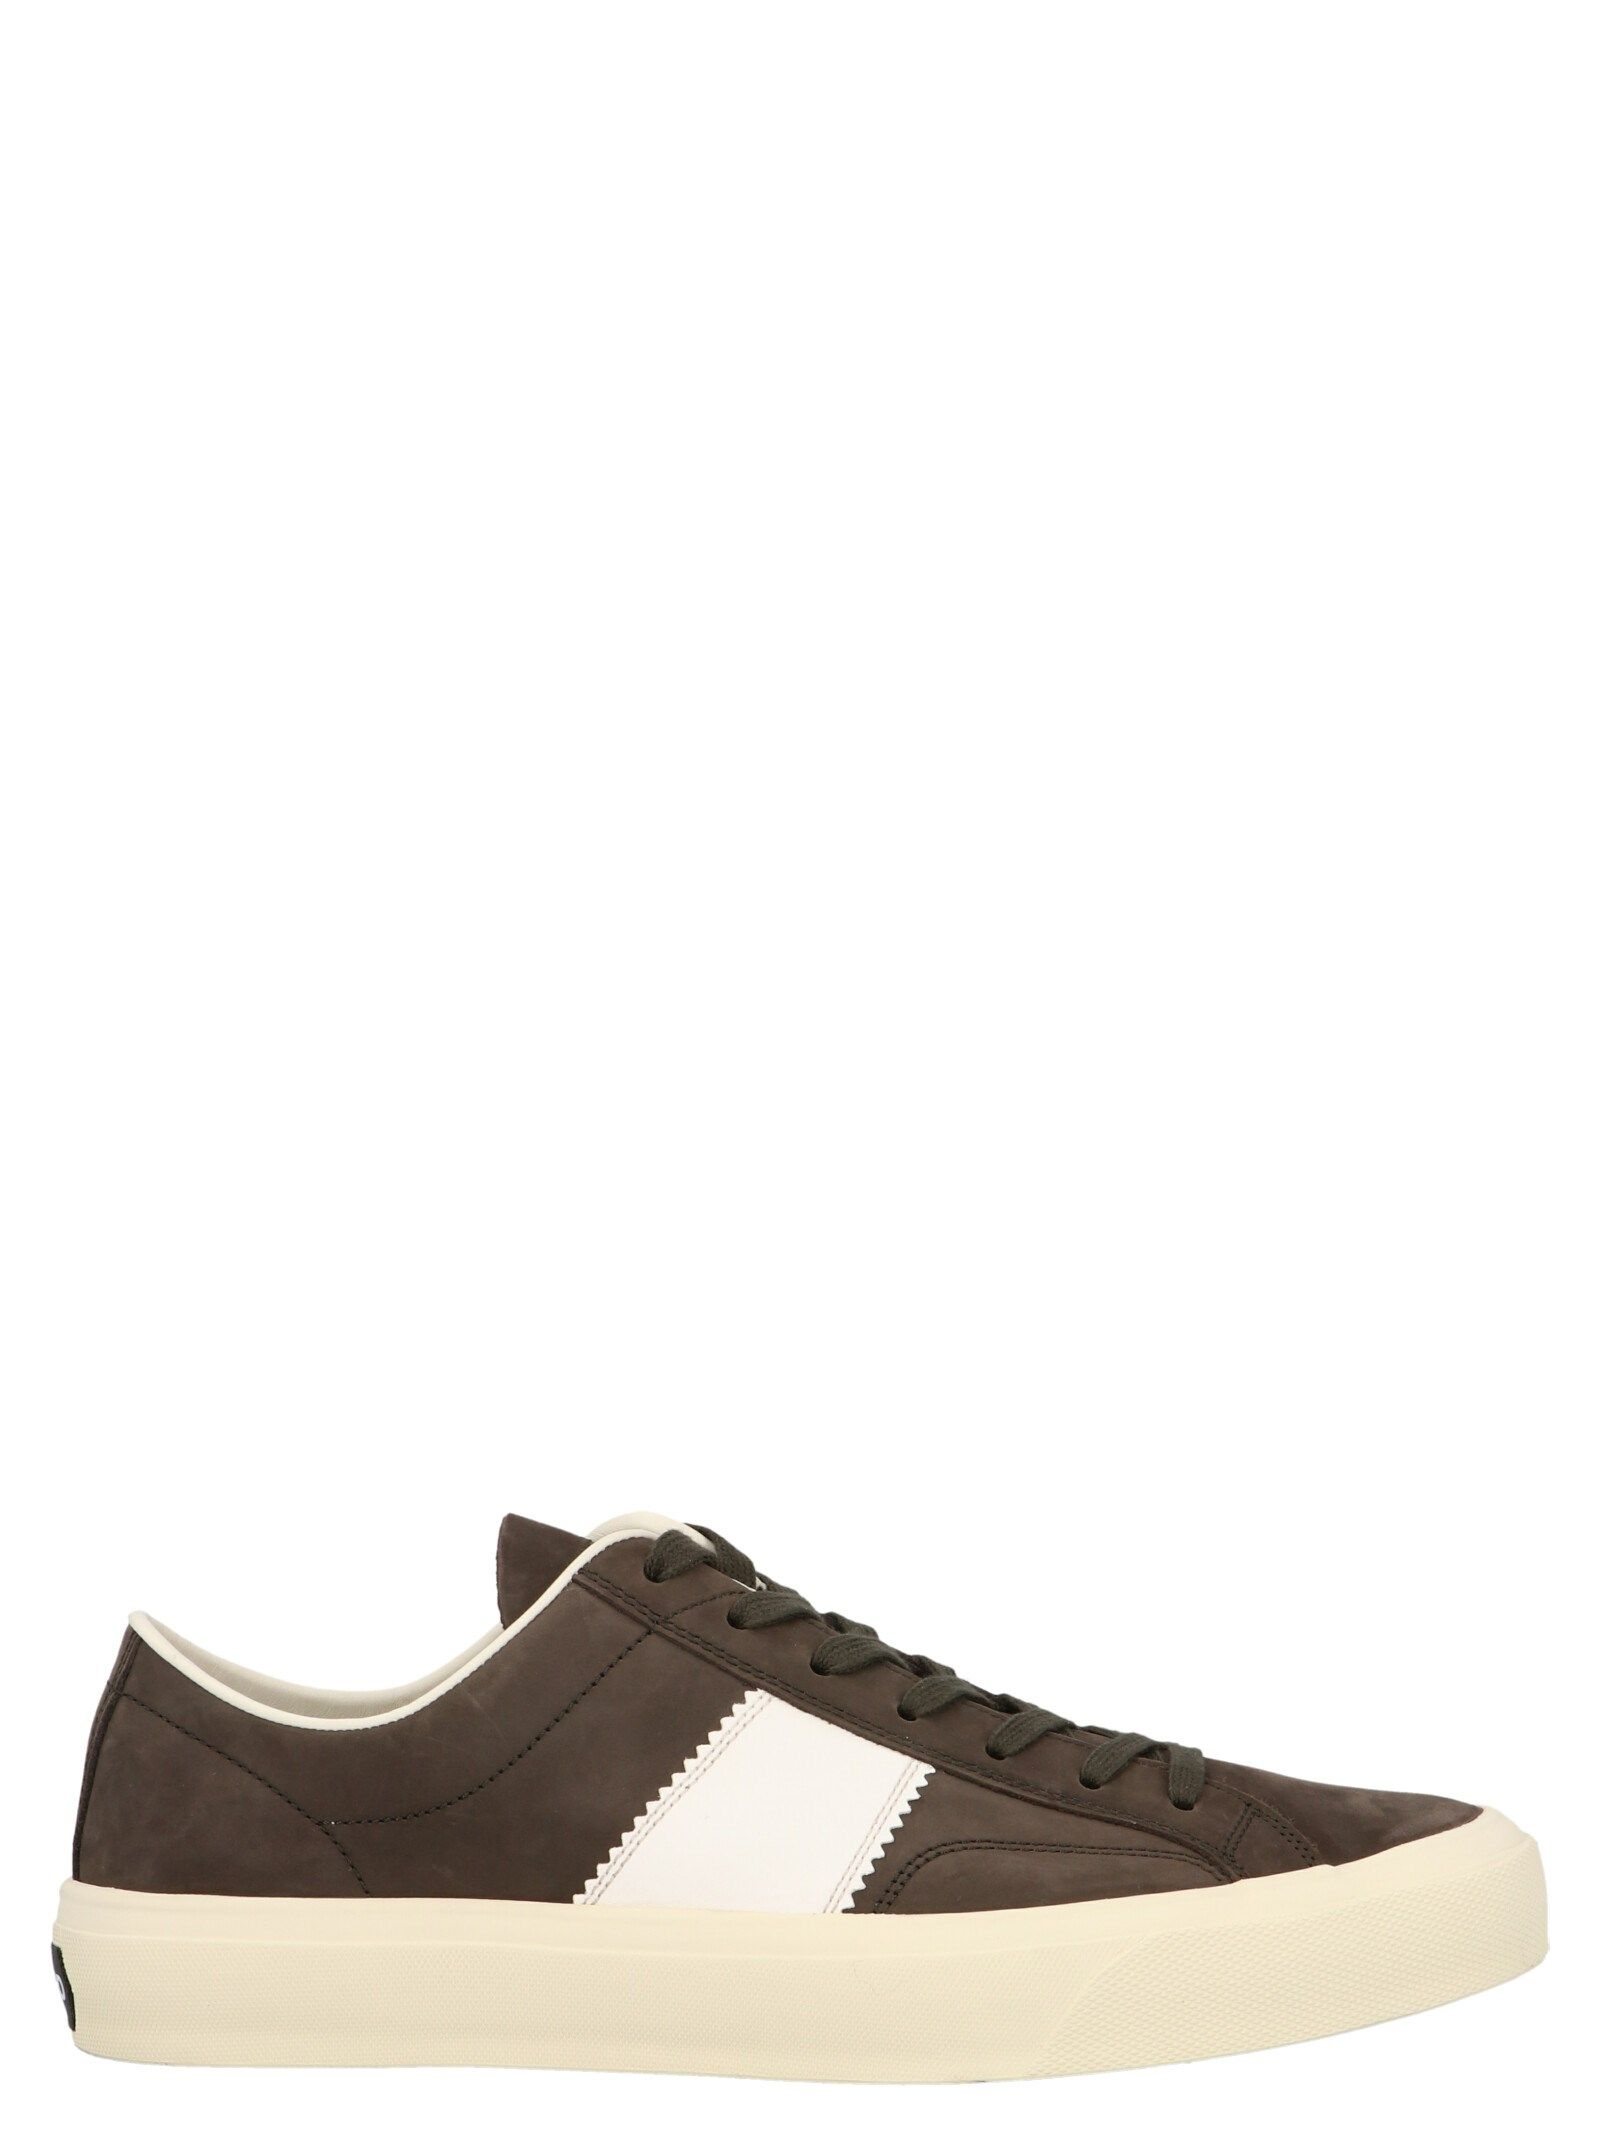 Tom Ford TOM FORD MEN'S BROWN OTHER MATERIALS SNEAKERS